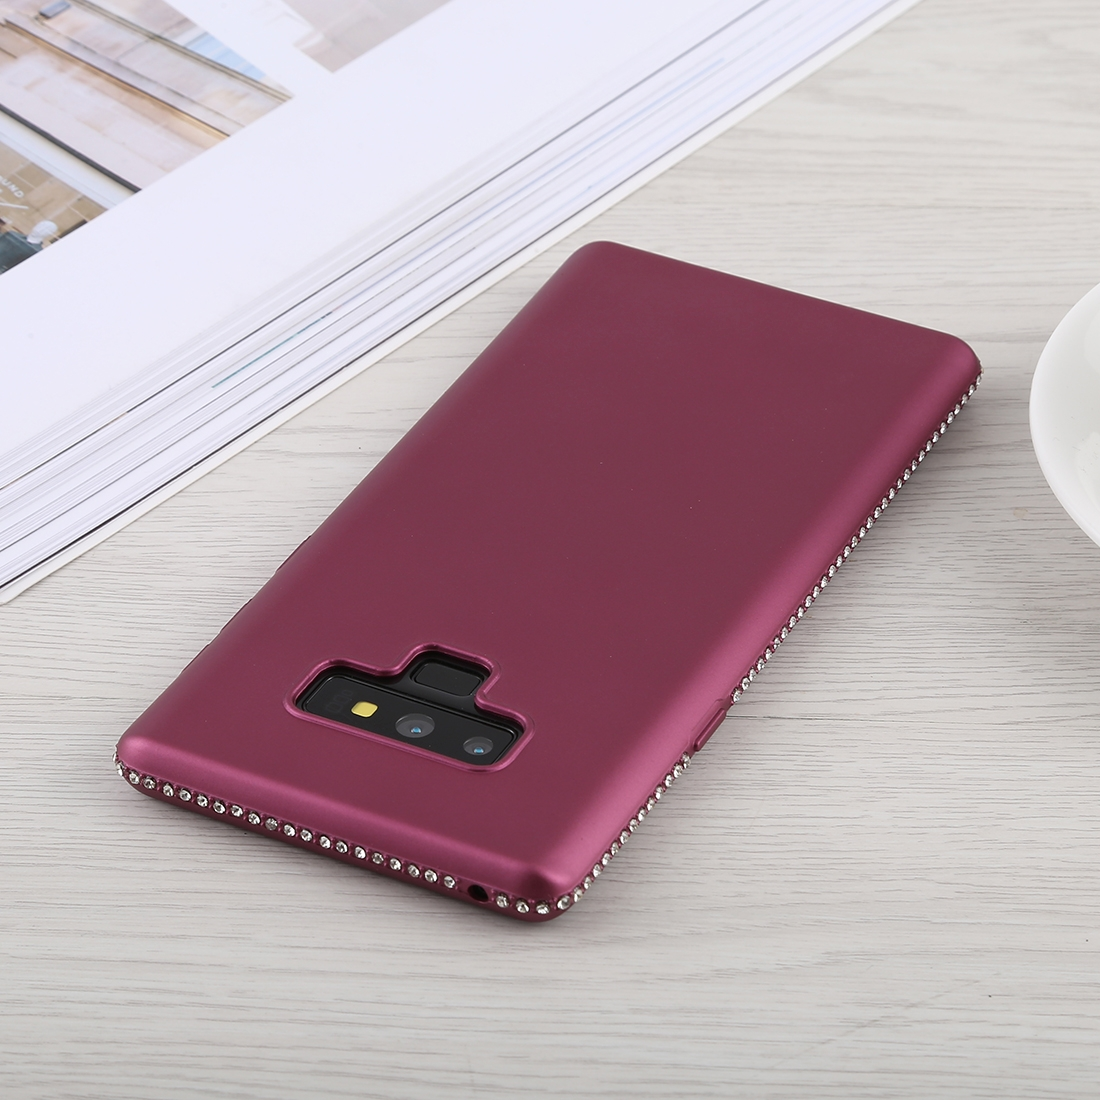 Crystal Decor Sides Smooth Surface Soft TPU Protective Back Case for Galaxy Note9 (Purple)